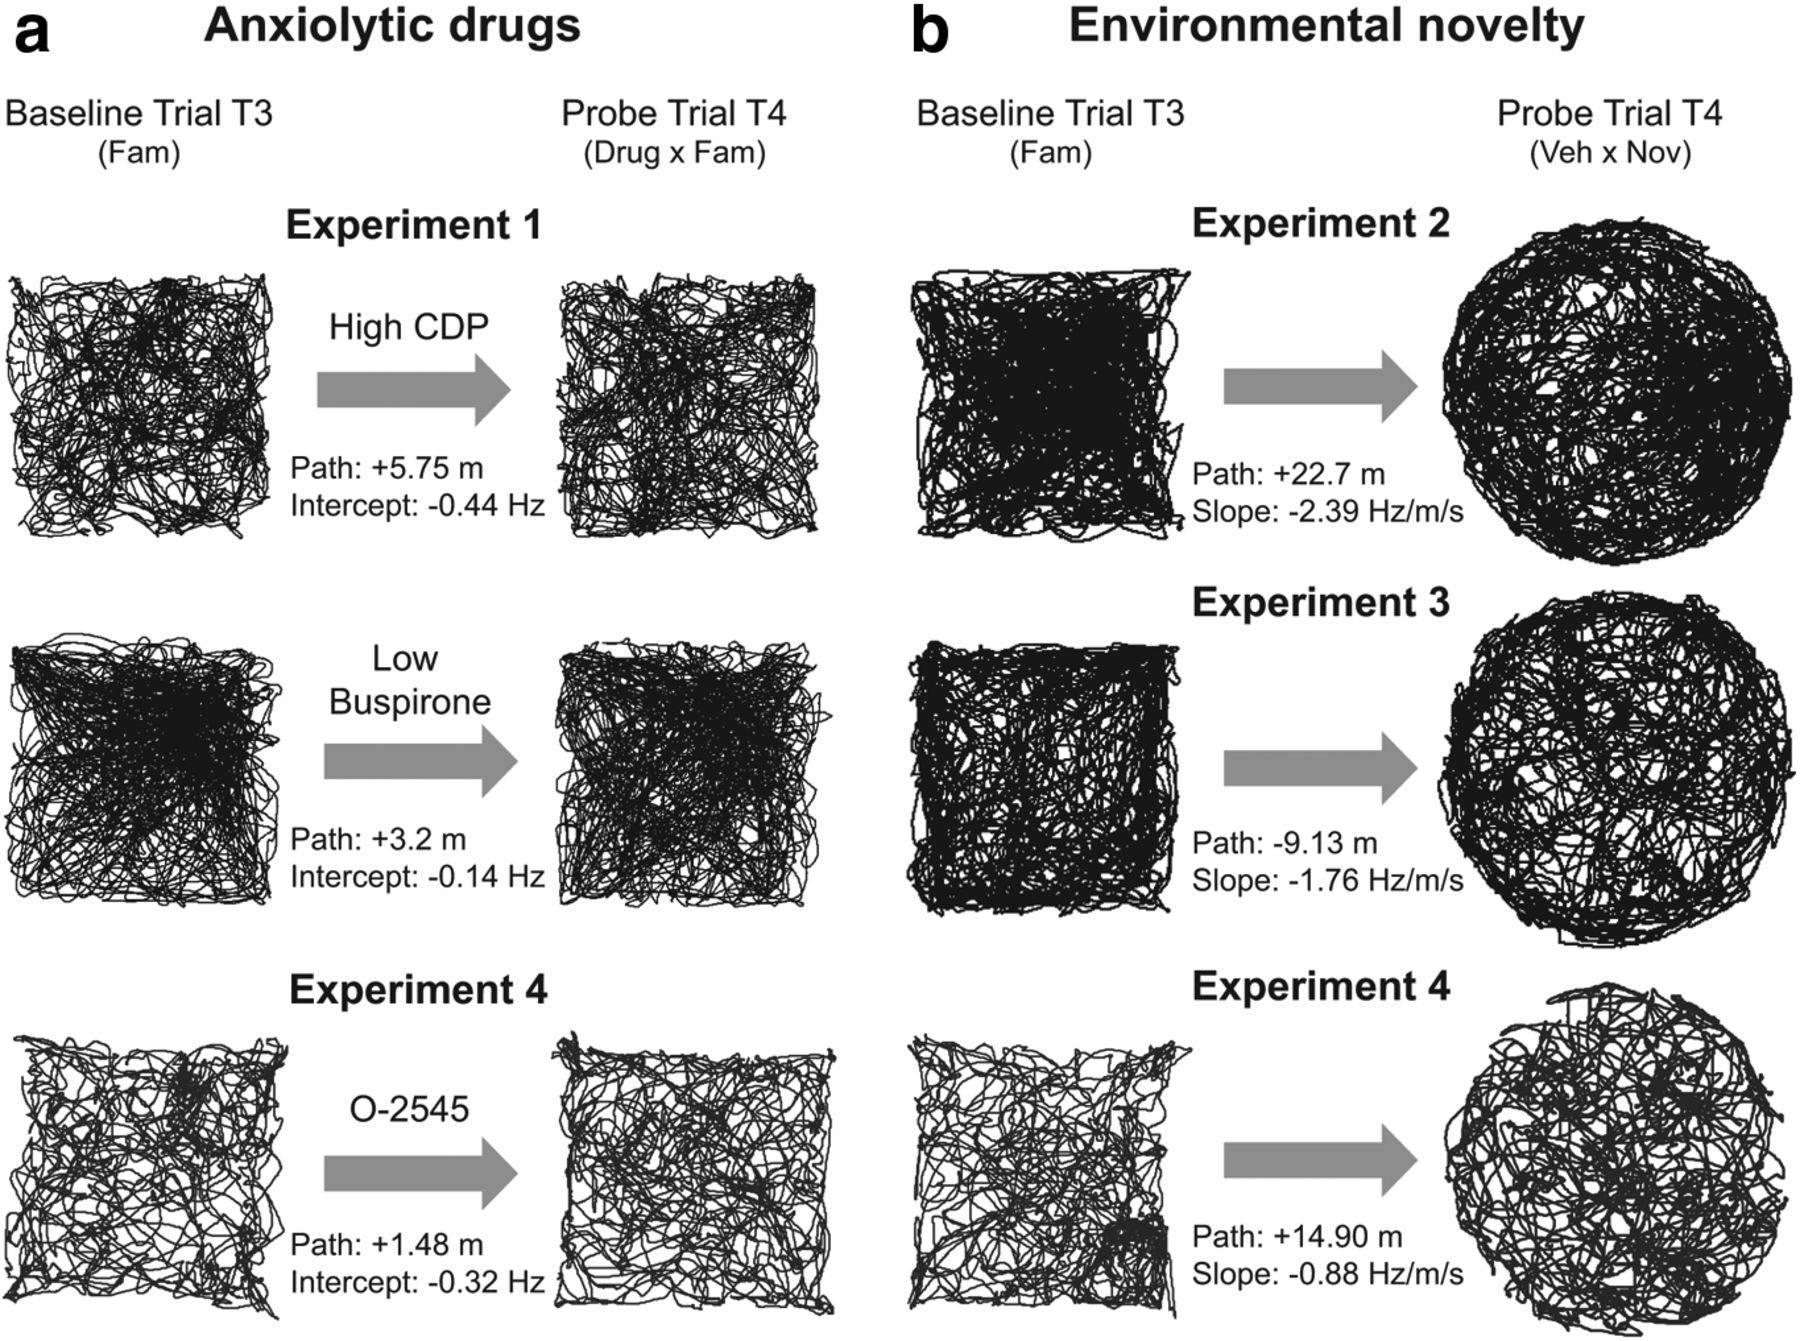 Novelty and Anxiolytic Drugs Dissociate Two Components of